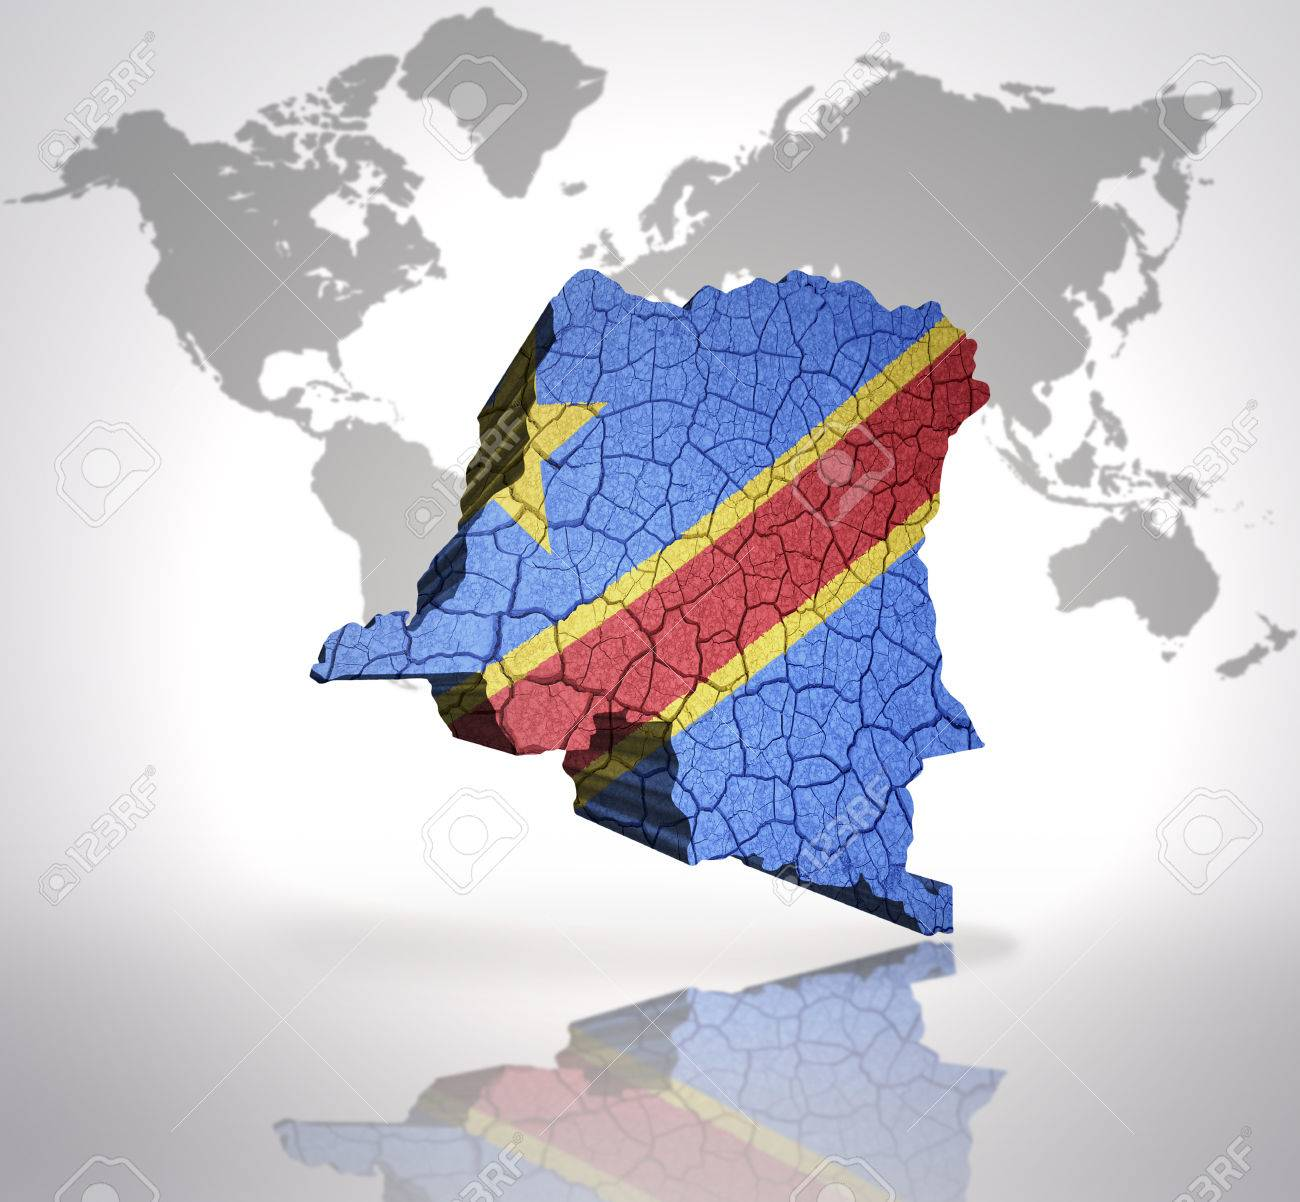 Map of democratic republic of congo with congolese flag on a stock map of democratic republic of congo with congolese flag on a world map background stock photo gumiabroncs Image collections